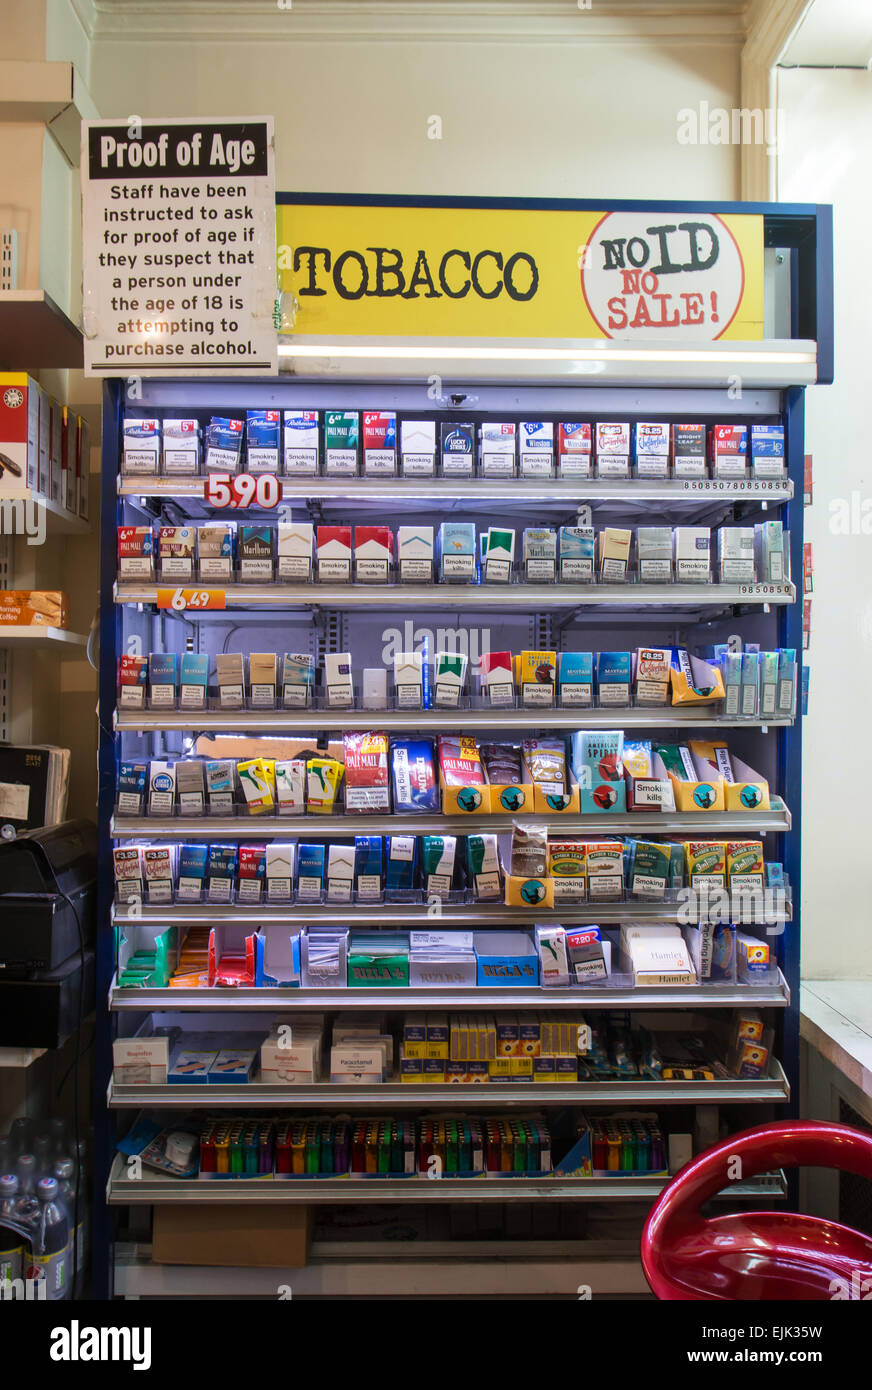 tobacco gantry in a small shop before the display ban - Stock Image